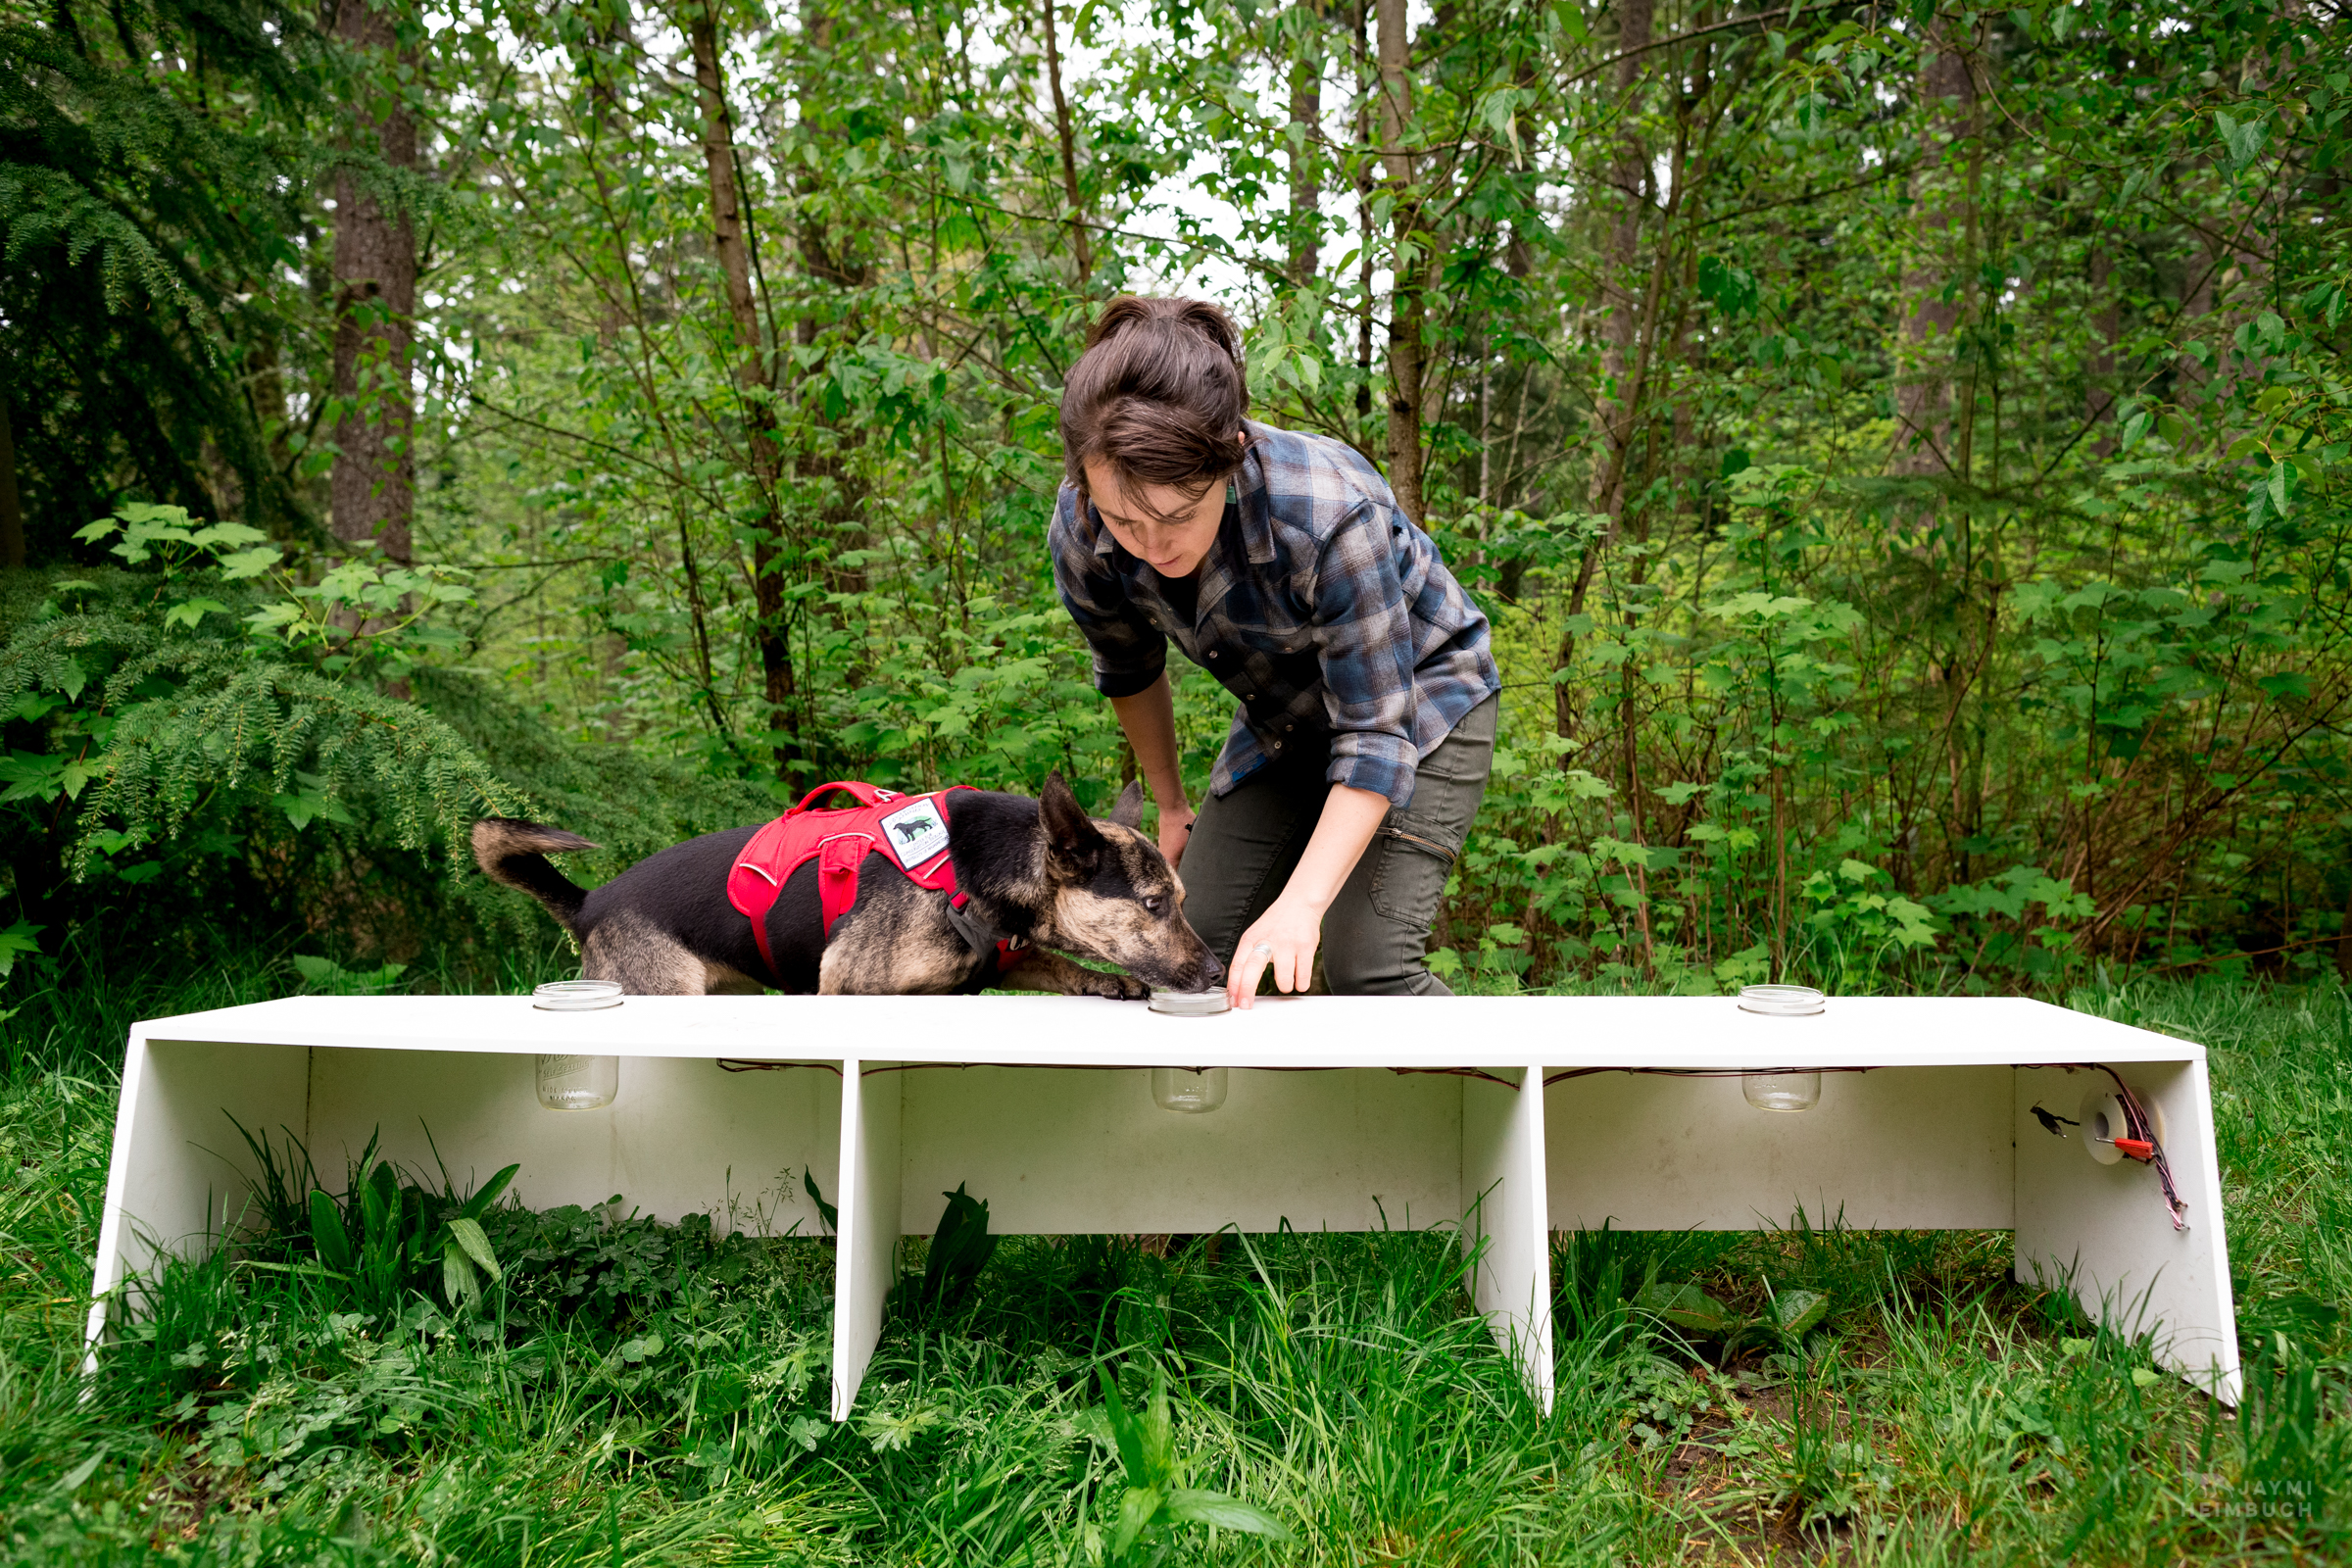 Domestic dog (Canis familiaris) adult with handler Suzie Marlow working at a scent detection training exercise. Skye, a mixed breed dog, is a working dog for Conservation Canines, a program of University of Washington's Center for Conservation Biology.